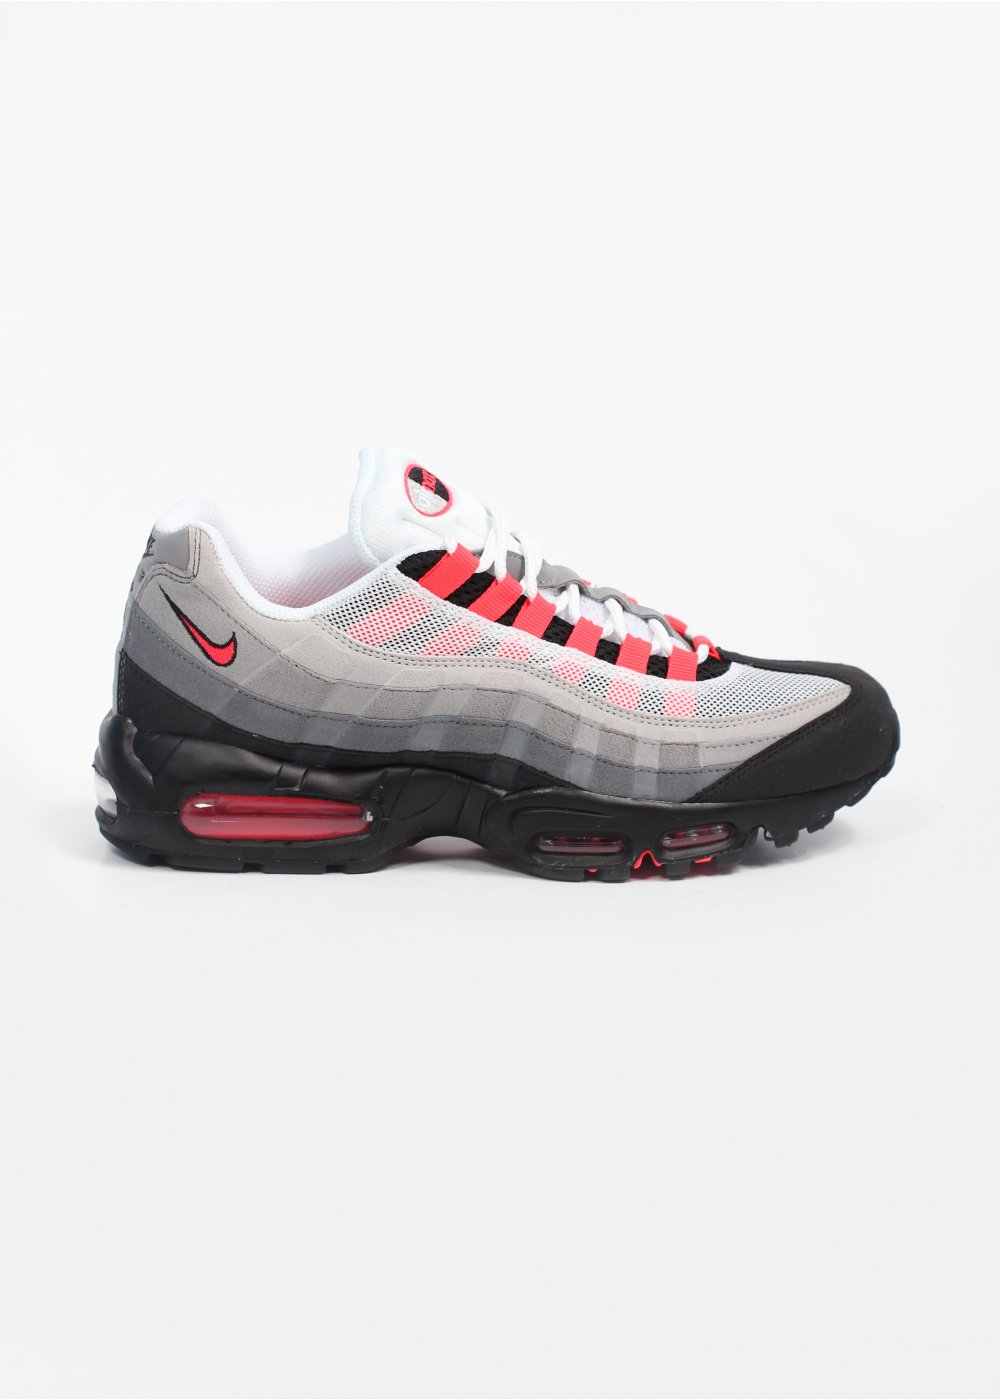 super popular 7f0bc 09e13 Nike Footwear Air Max 95 Trainers - White / Solar Red